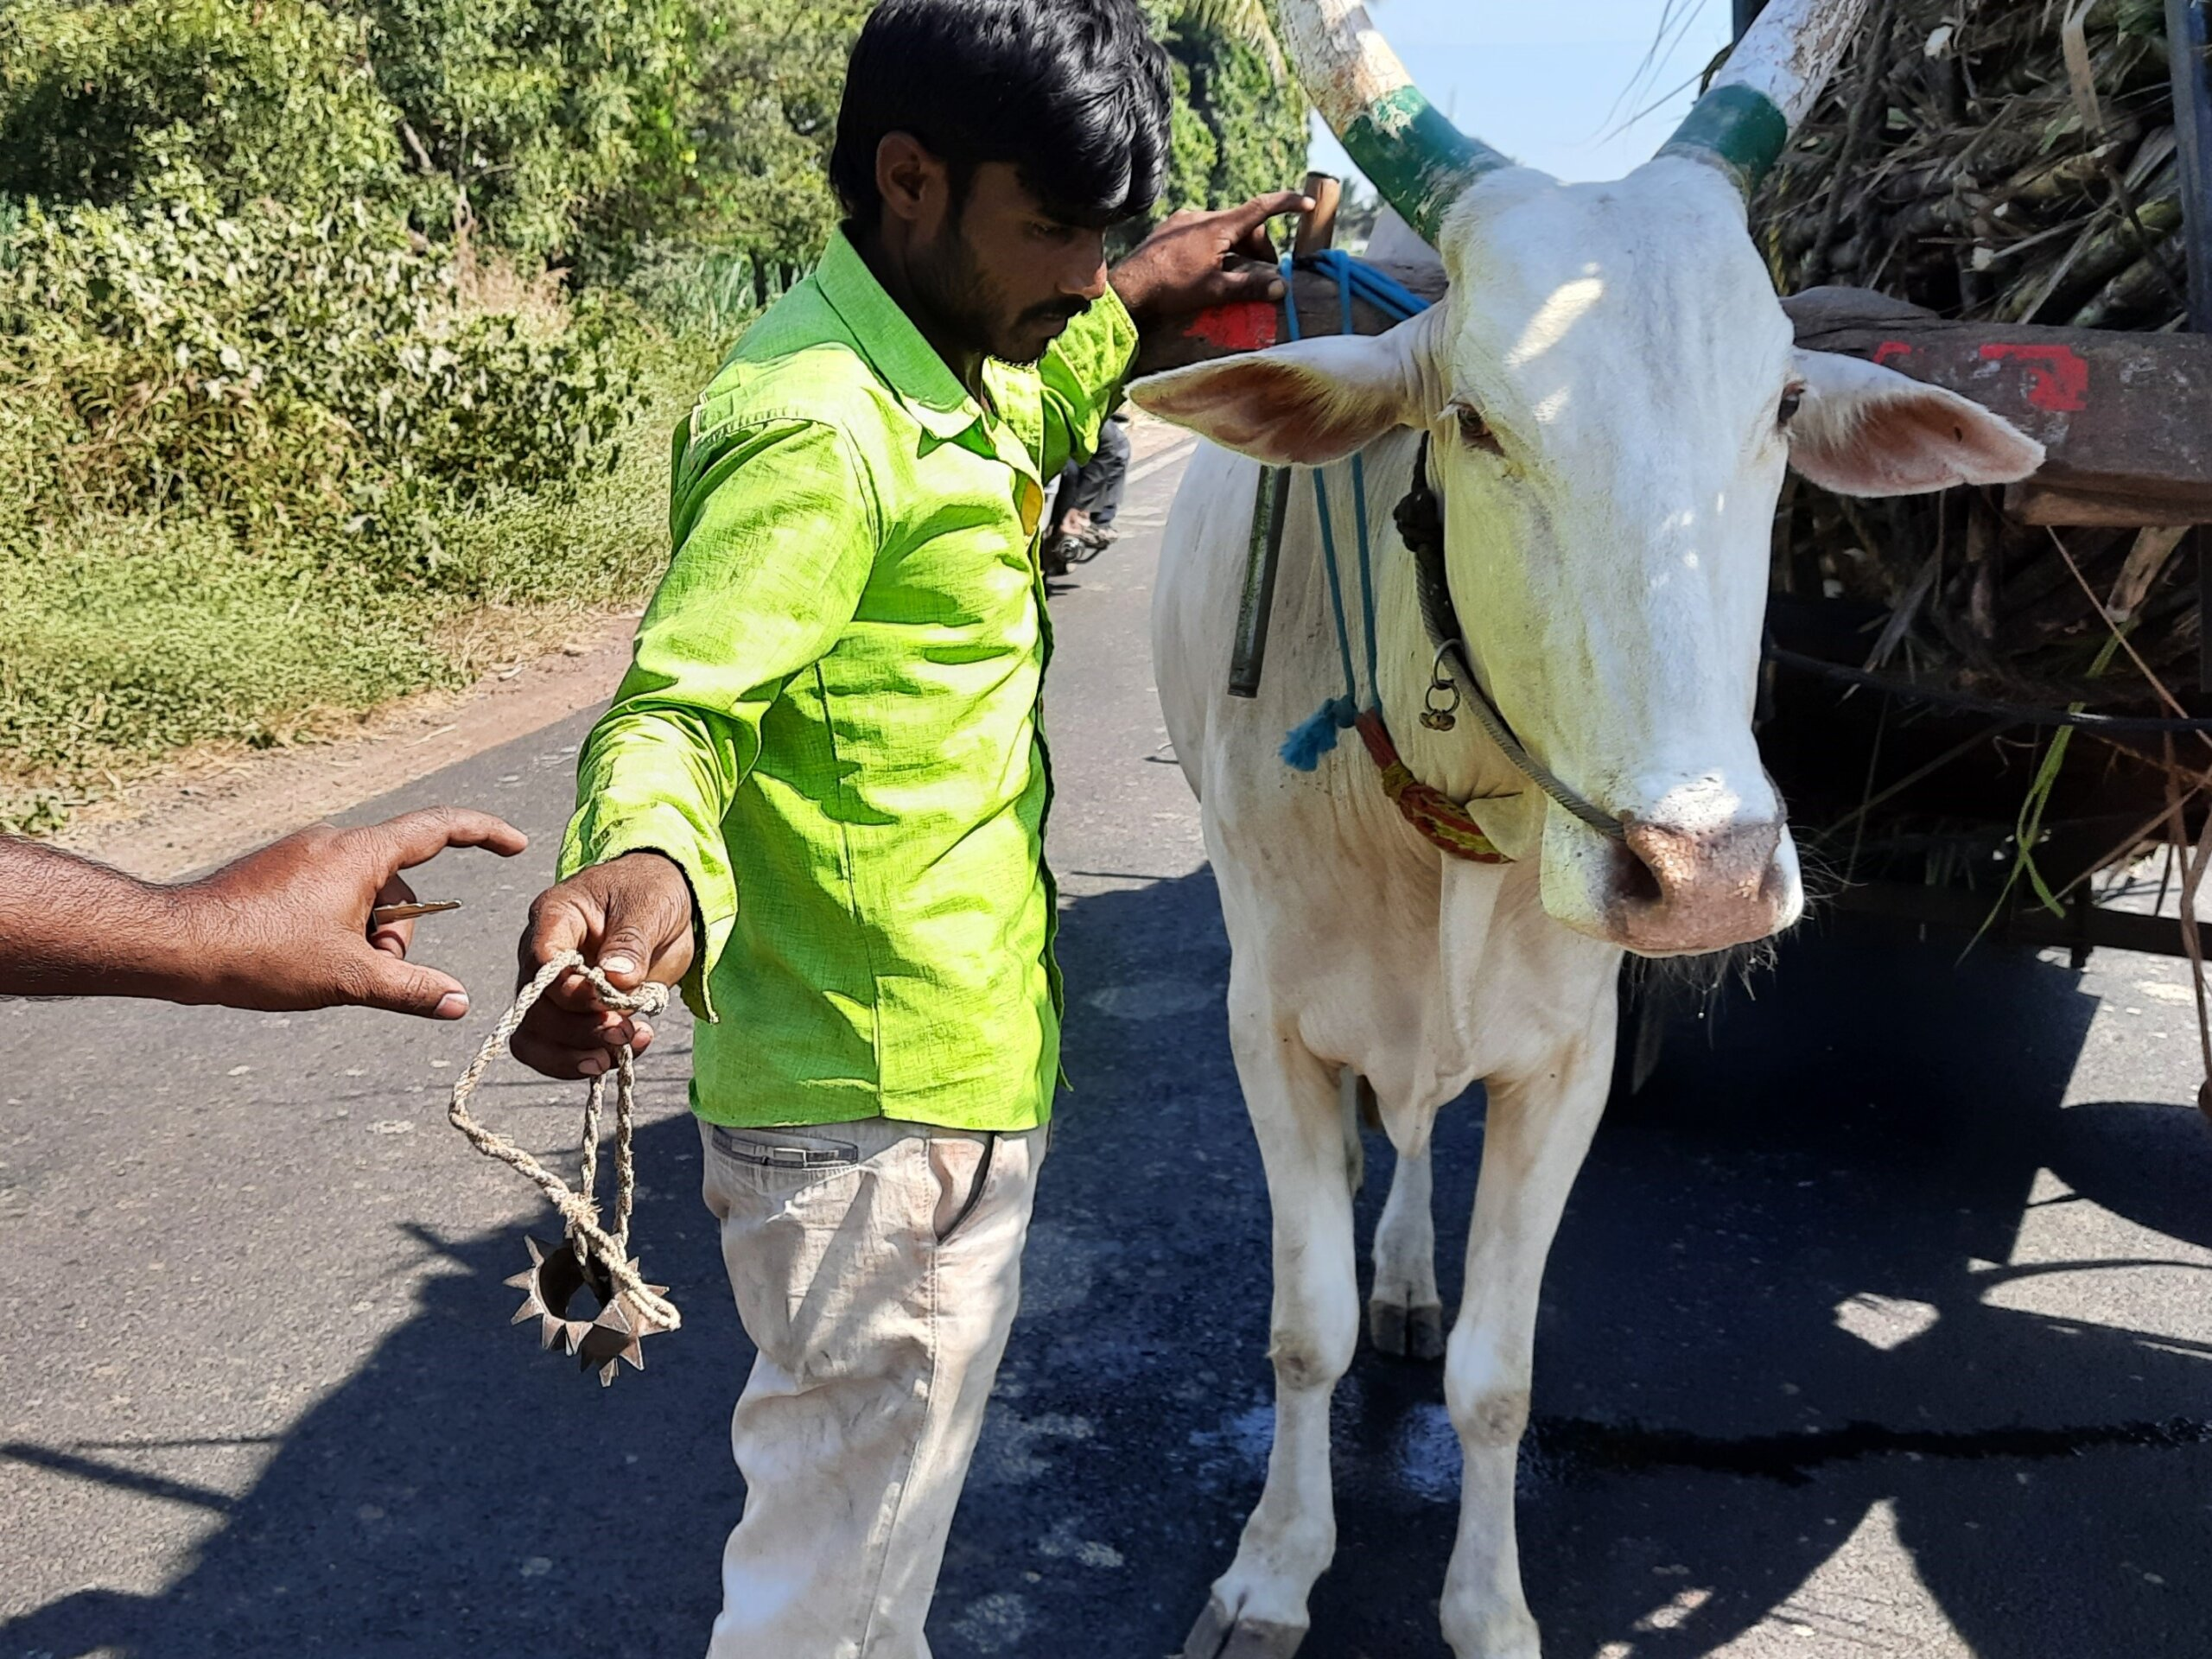 Animal Rahat stopped this man on the way to a sugar factory and persuaded him to remove his yoke spikes.